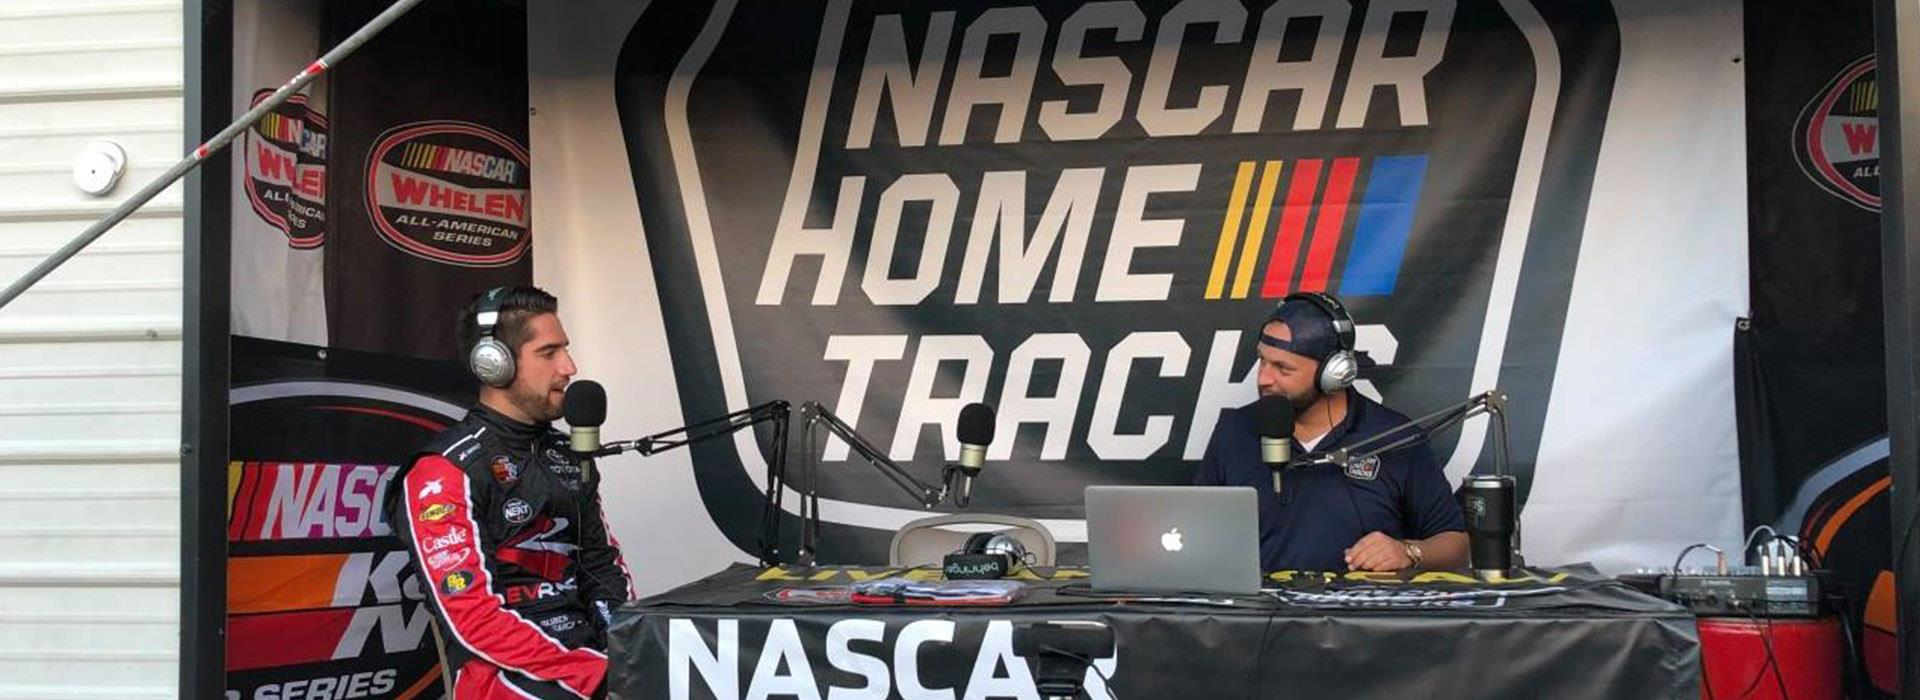 Combining community and diversity in the racing world